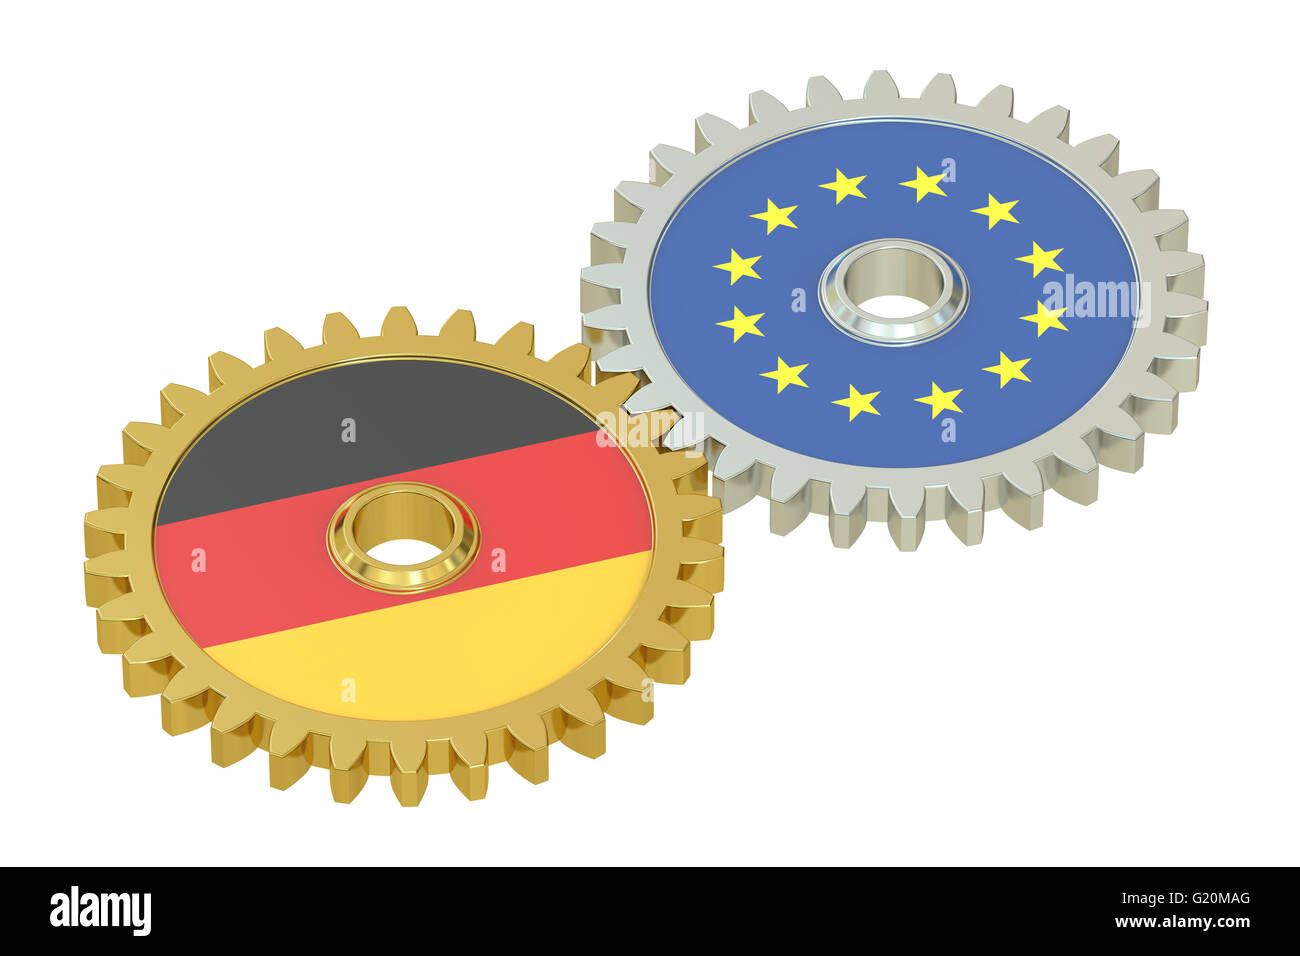 Germany and EU flags on a gears, 3D rendering isolated on white background - Stock Image